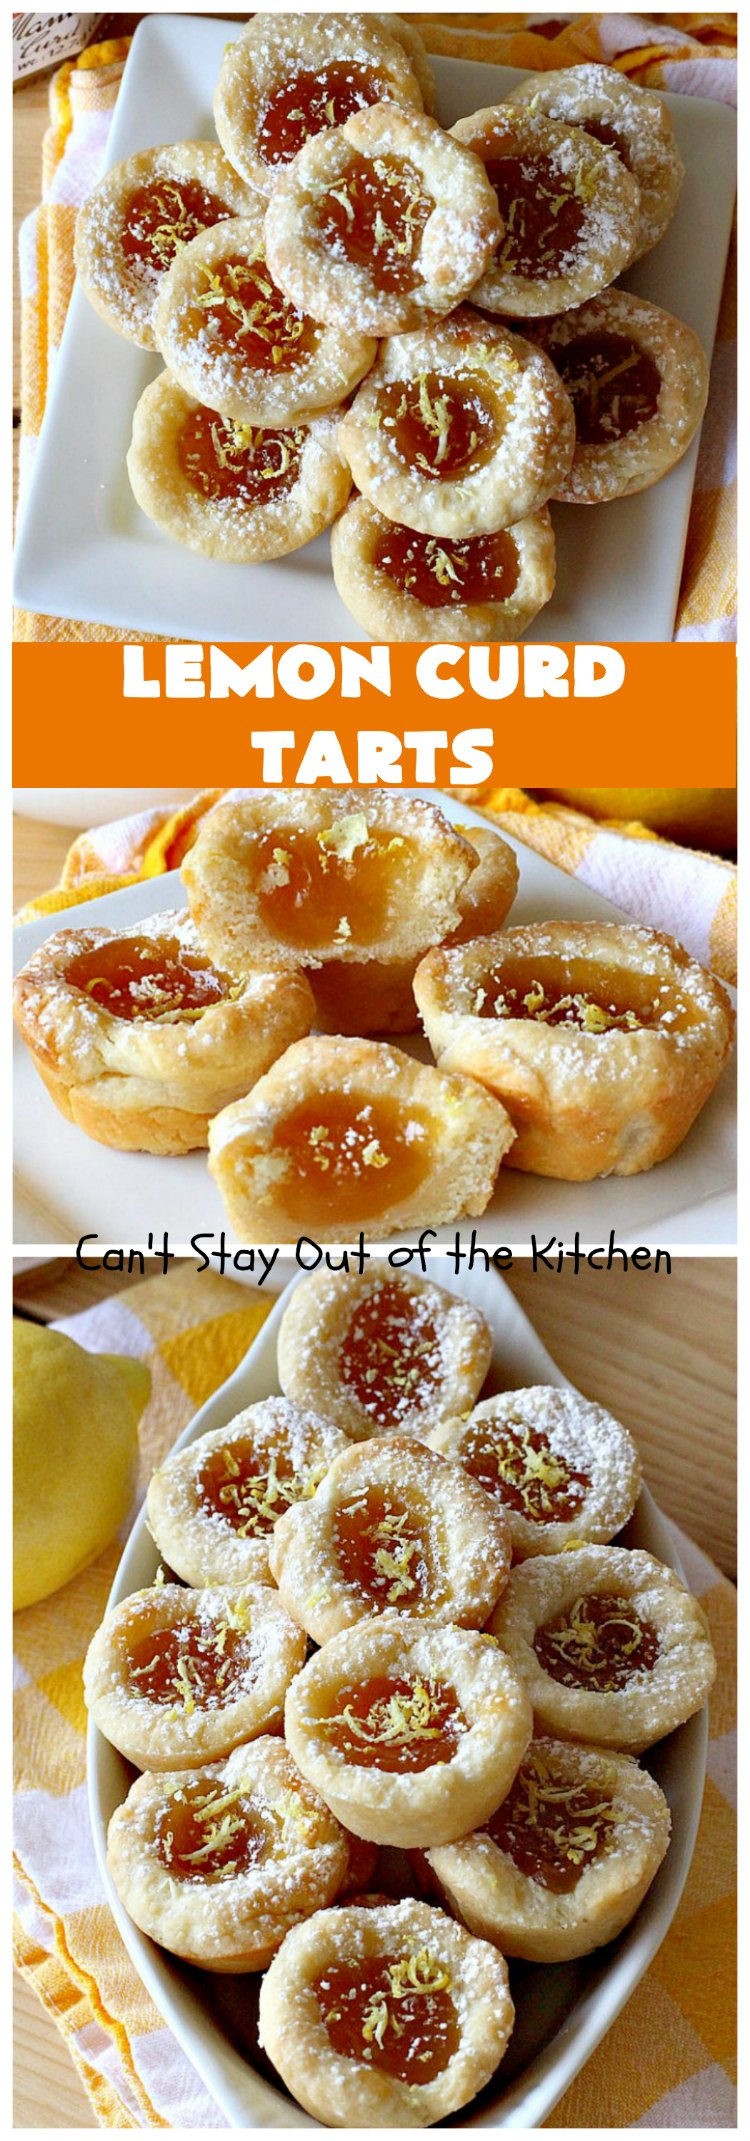 Lemon Curd Tarts   Can't Stay Out of the Kitchen